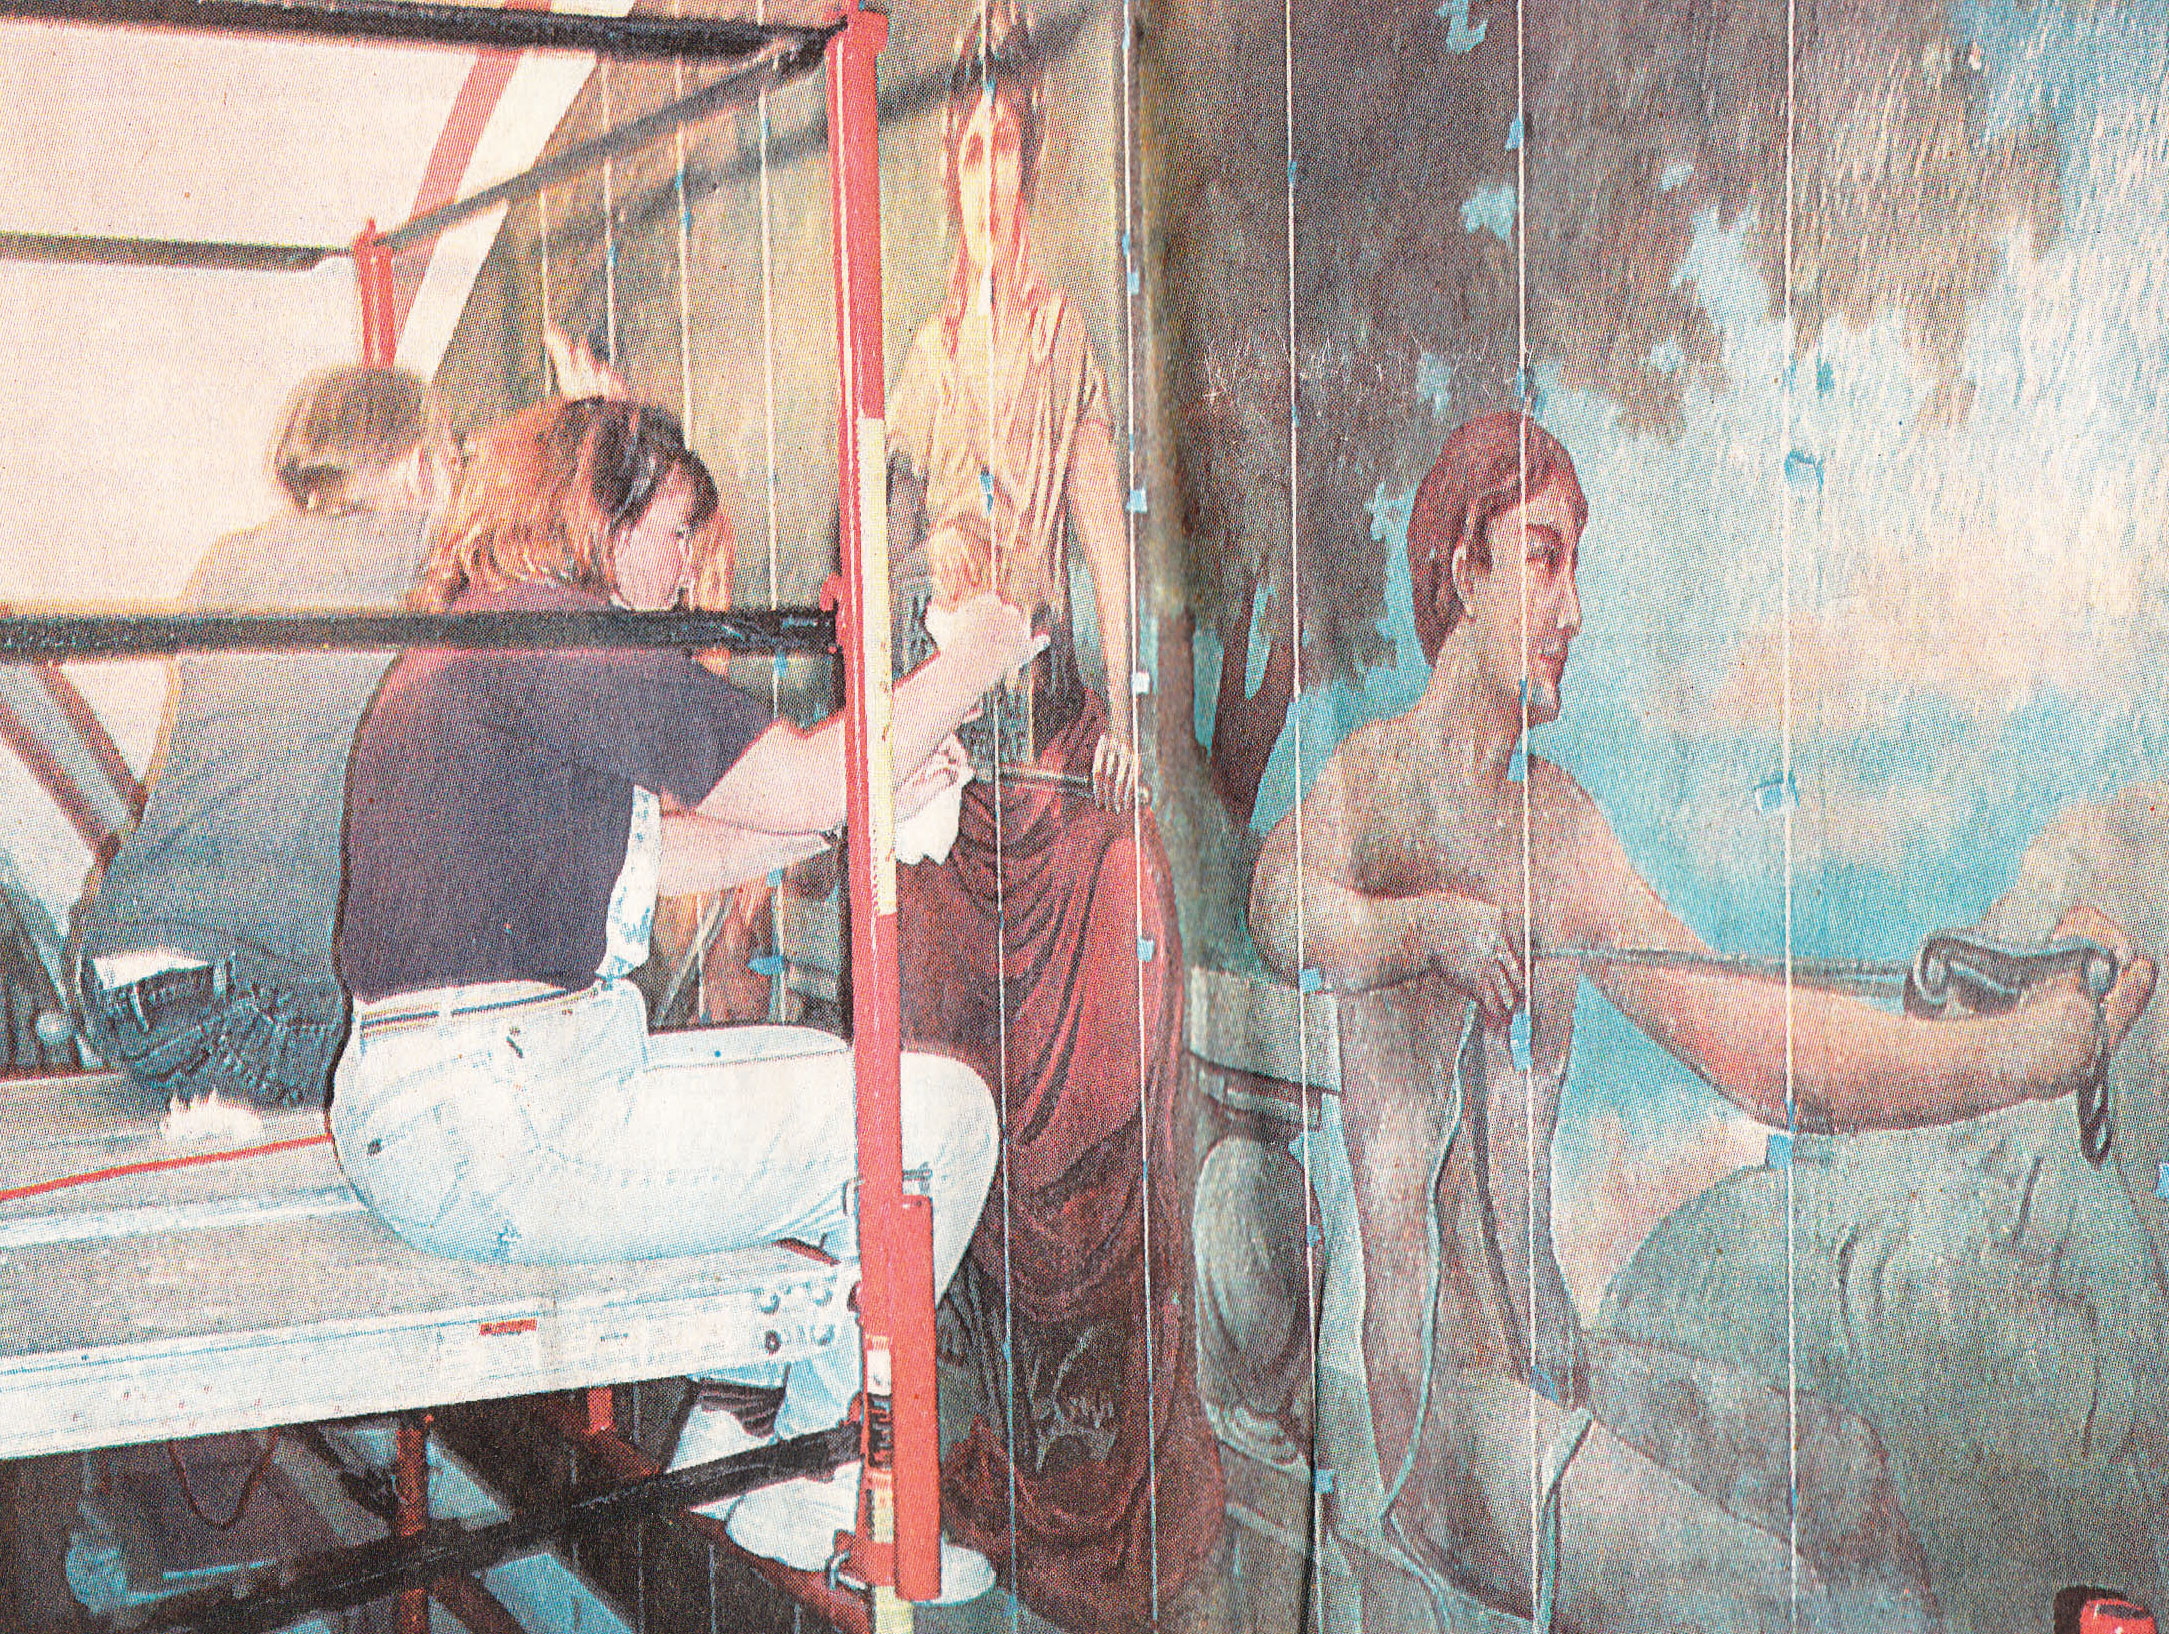 Nancy Achberger of Milford uses a syringe to inject an adhesive behind an air pocket in the paint of this mural on the second floor of the Greene County Courthouse. Archberger and the three other artists, including John Babcok who is in the background, are renovating the mural.